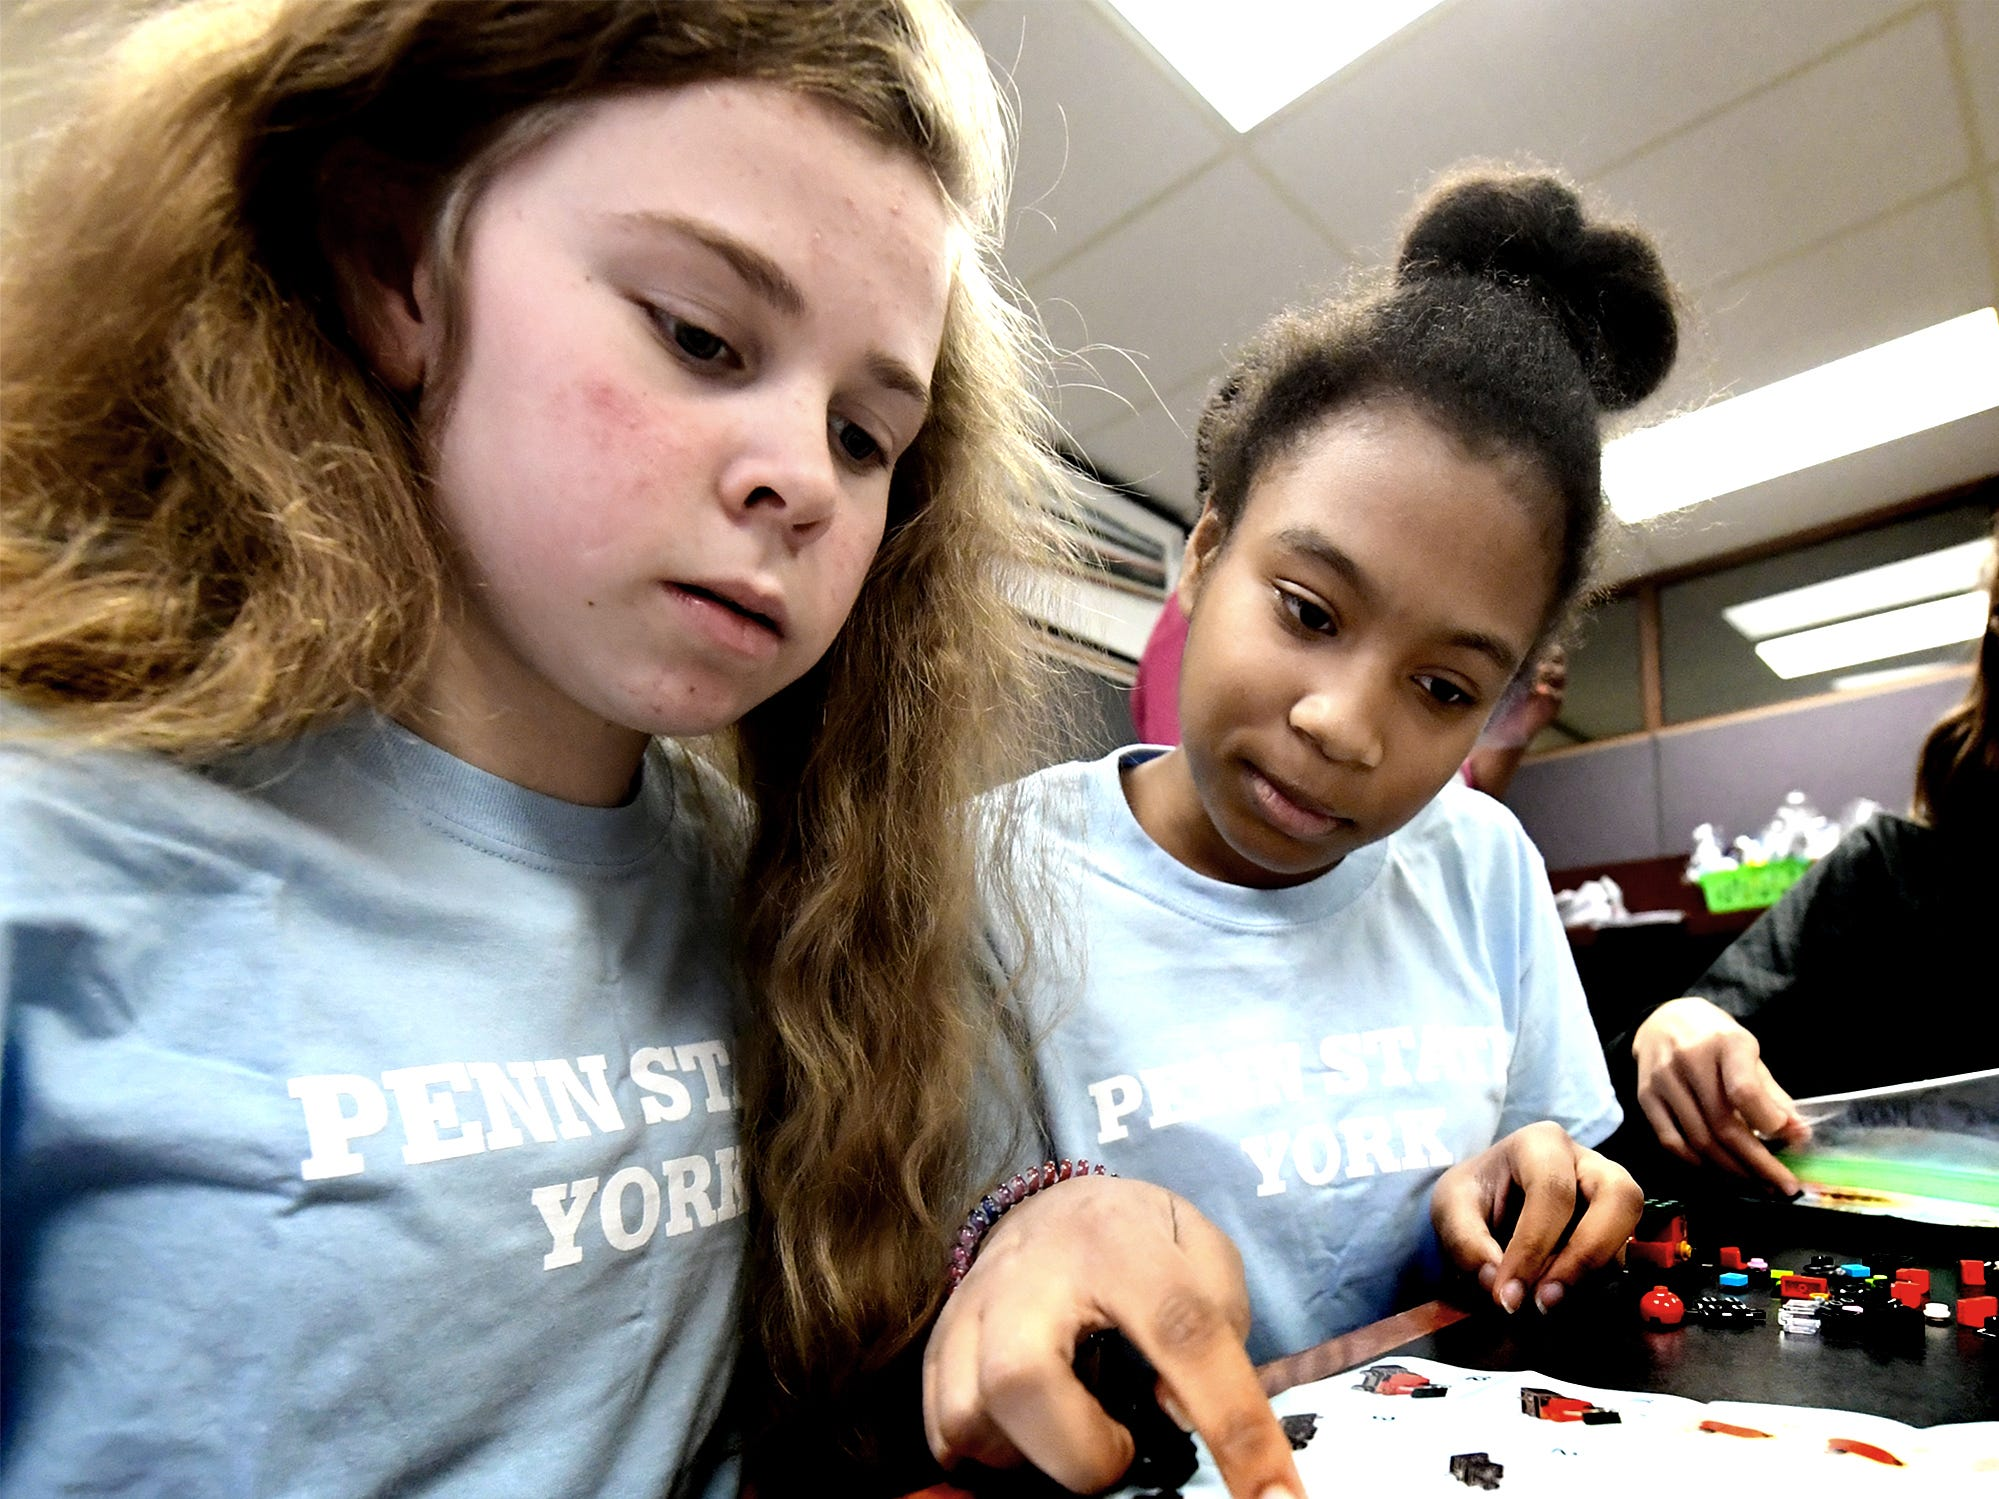 South Eastern Middle School students Chloe Jones, left, and Gabby Williams work on a puzzle during Marshmallow Minds, a social science workshop at the Pathways to Your Future: Exploring STEAM Careers event at Penn State York Friday, May 10, 2019. Over 200 seventh-grade girls from 28 area schools participated in the program which highlighted science, technology, engineering, art, and mathematics (STEAM) careers. Industry leaders administered the workshops during the program, which is in its 23rd year. Bill Kalina photo